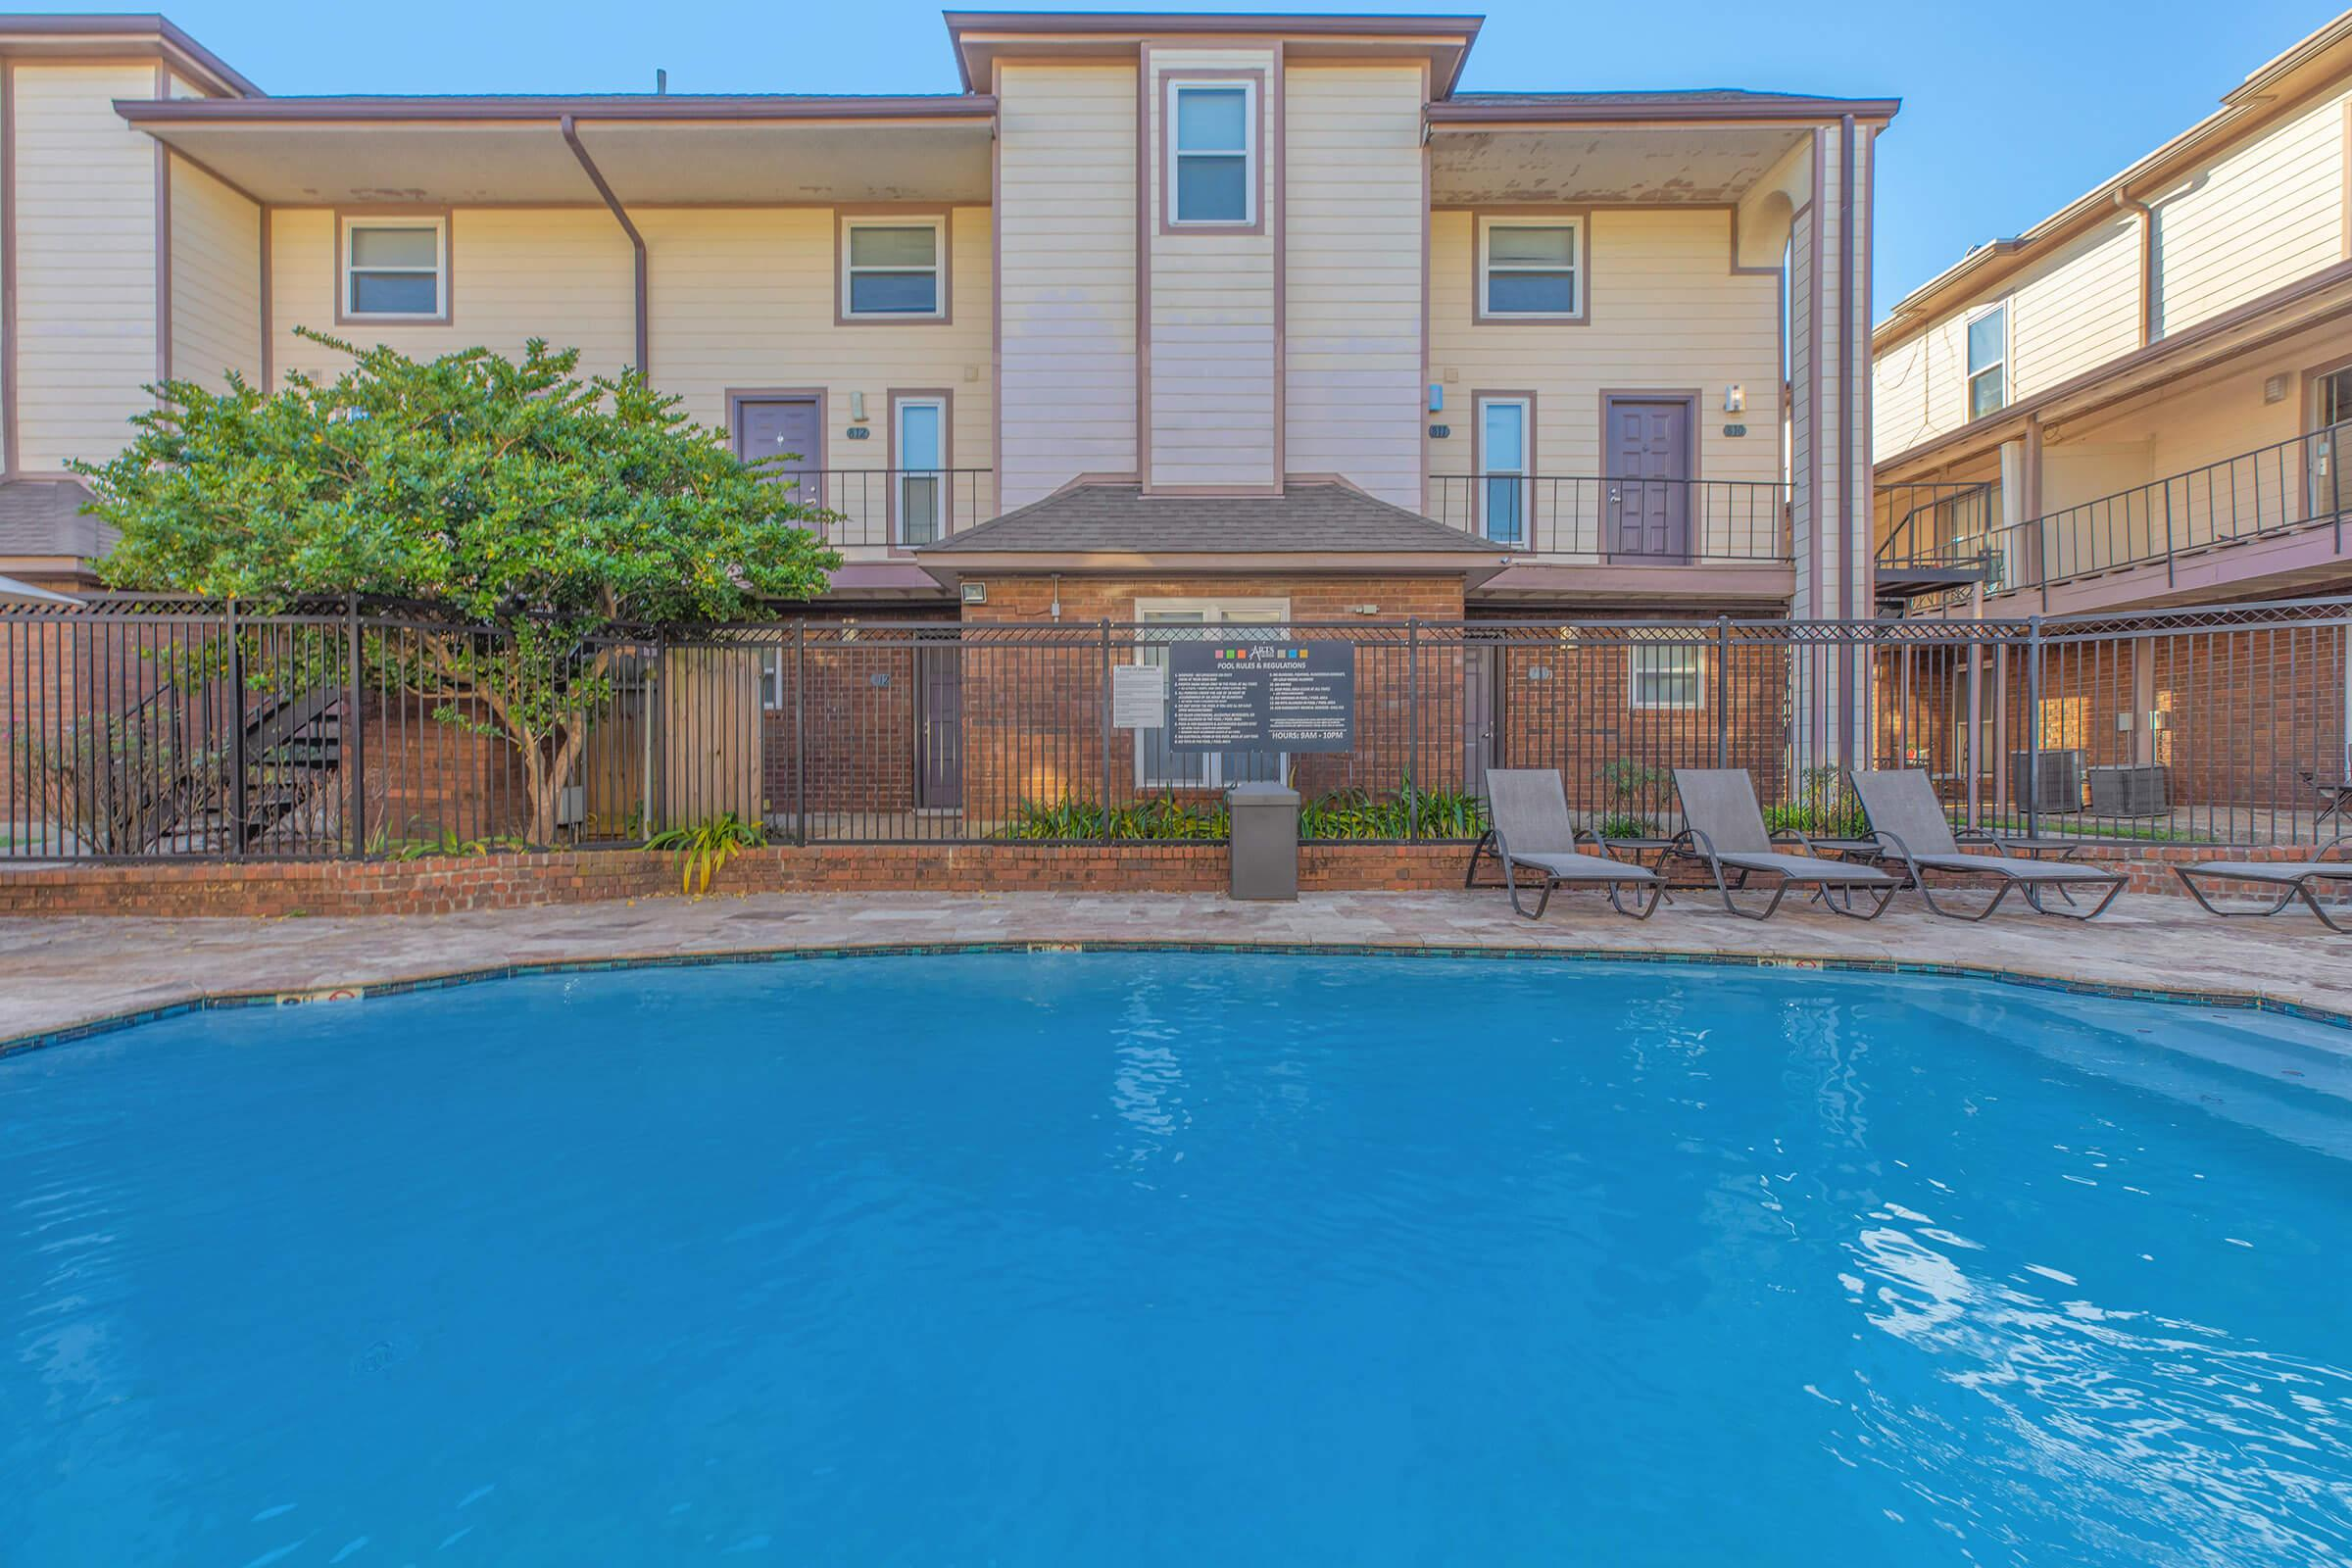 APARTMENTS FOR RENT IN METAIRIE, LA